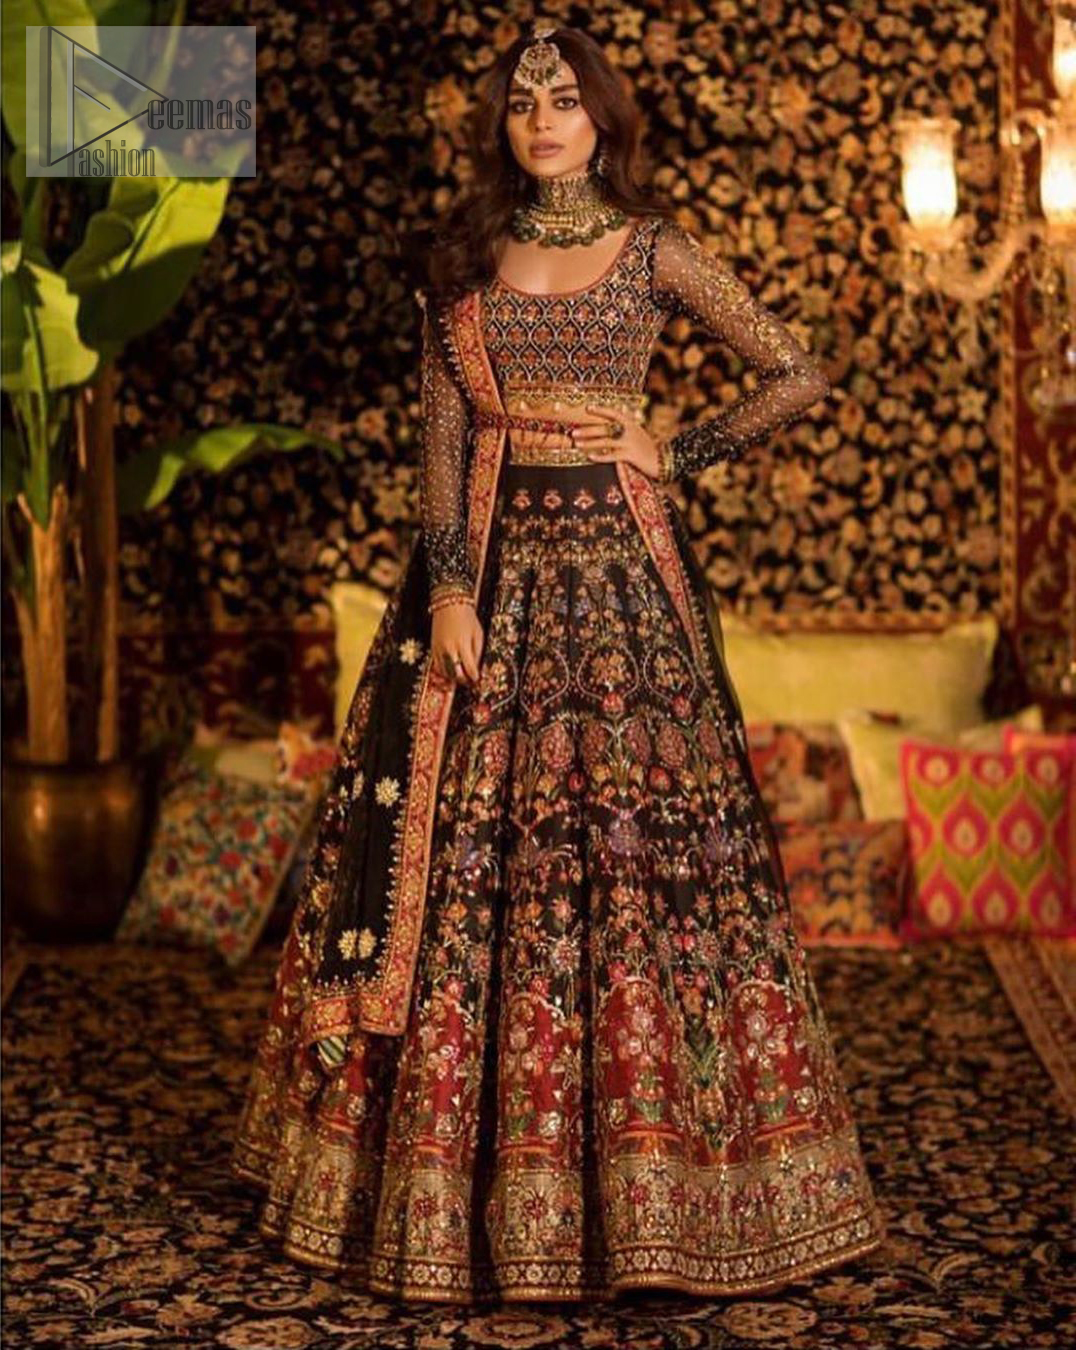 Tradition meets modernity. Go glam in our black traditional lehenga blouse. This outfit bursts of vibrant colors and sumptuous details of zardozi, gota, kora and dabka is a perfect Mehndi ensemble. It is aesthetically designed with thick borders and floral bunches refined the classical royal look. Blouse is decorated with geometric patterns having full sleeves adorned with zardosi work and sprinkled sequins. Style it up with black net dupatta sprinkled with tiny floral motifs and four sided applique embellishment. The piece comes with a handcrafted belt.